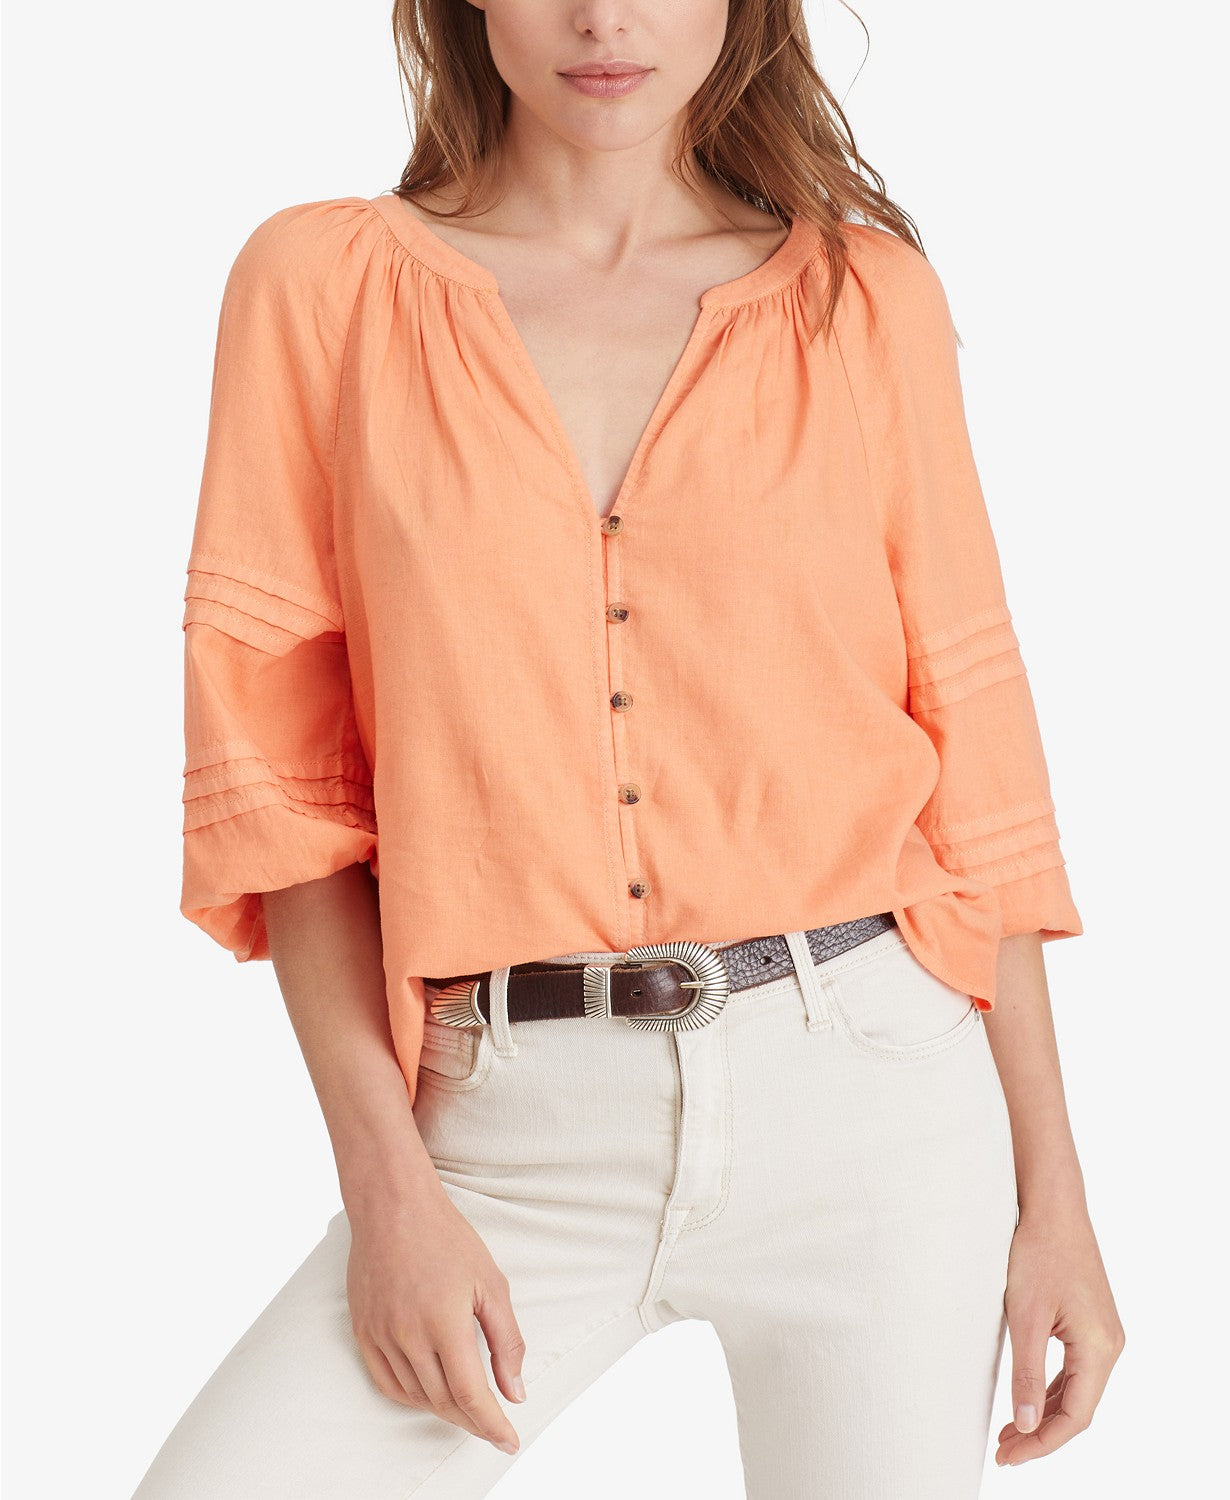 Sanctuary Clothing Sunnier Days Woven Top